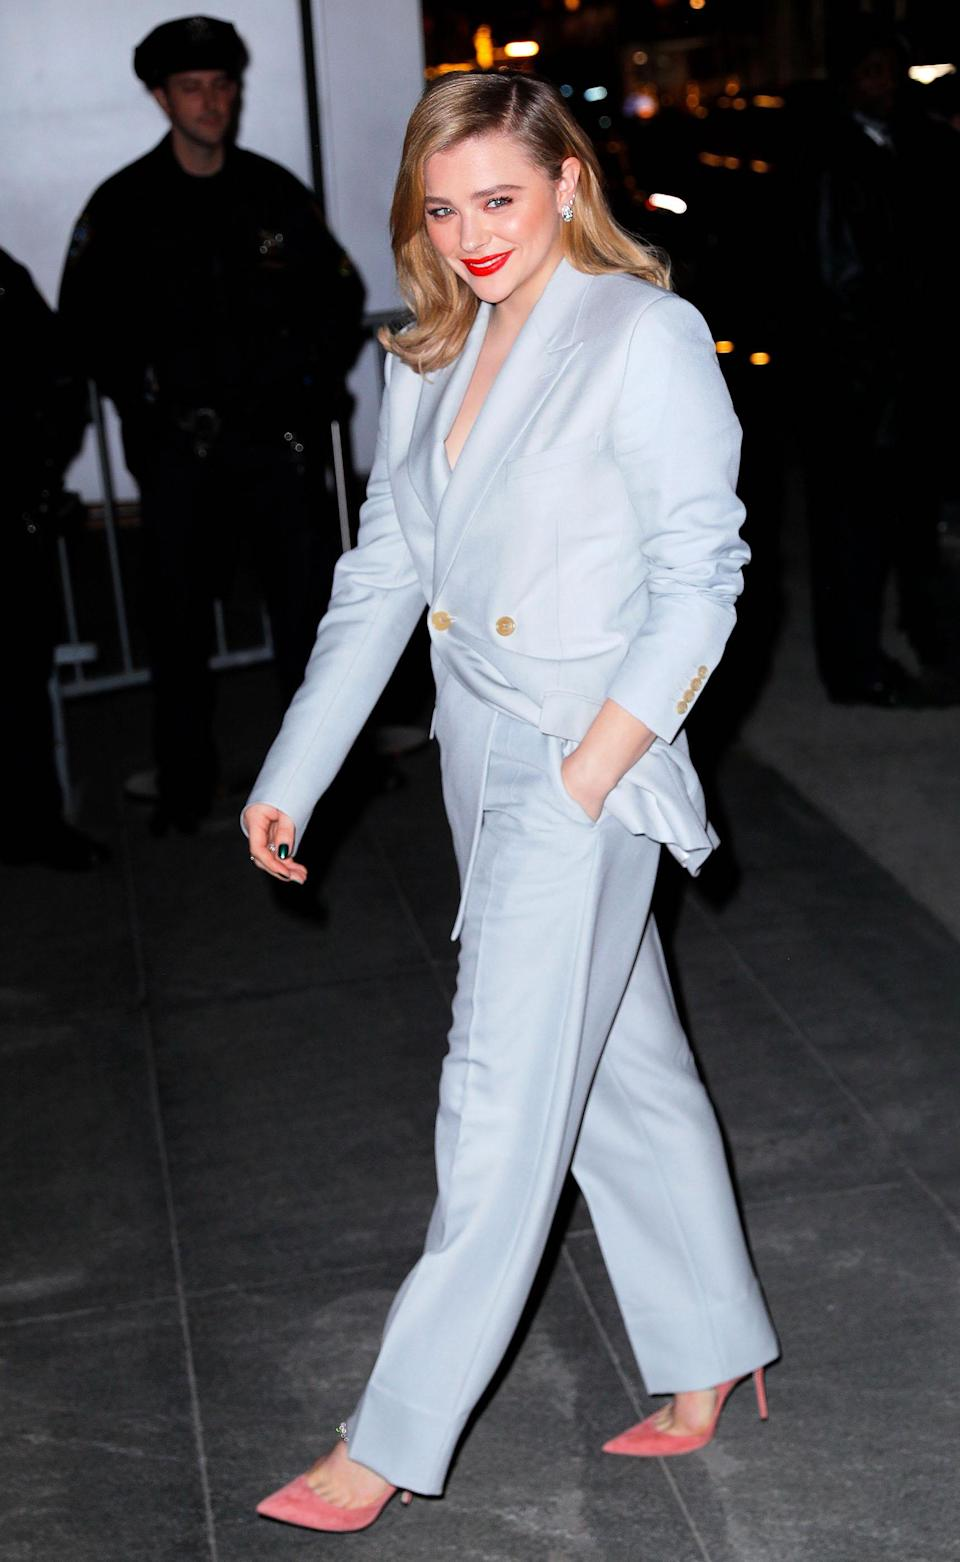 <p>On November 19, Chloë Moretz demonstrated how to work a chic evening suit this festive season at the 'Film Benefit: A Tribute To Martin Scorsese' event in New York. <em>[Photo: Getty]</em> </p>